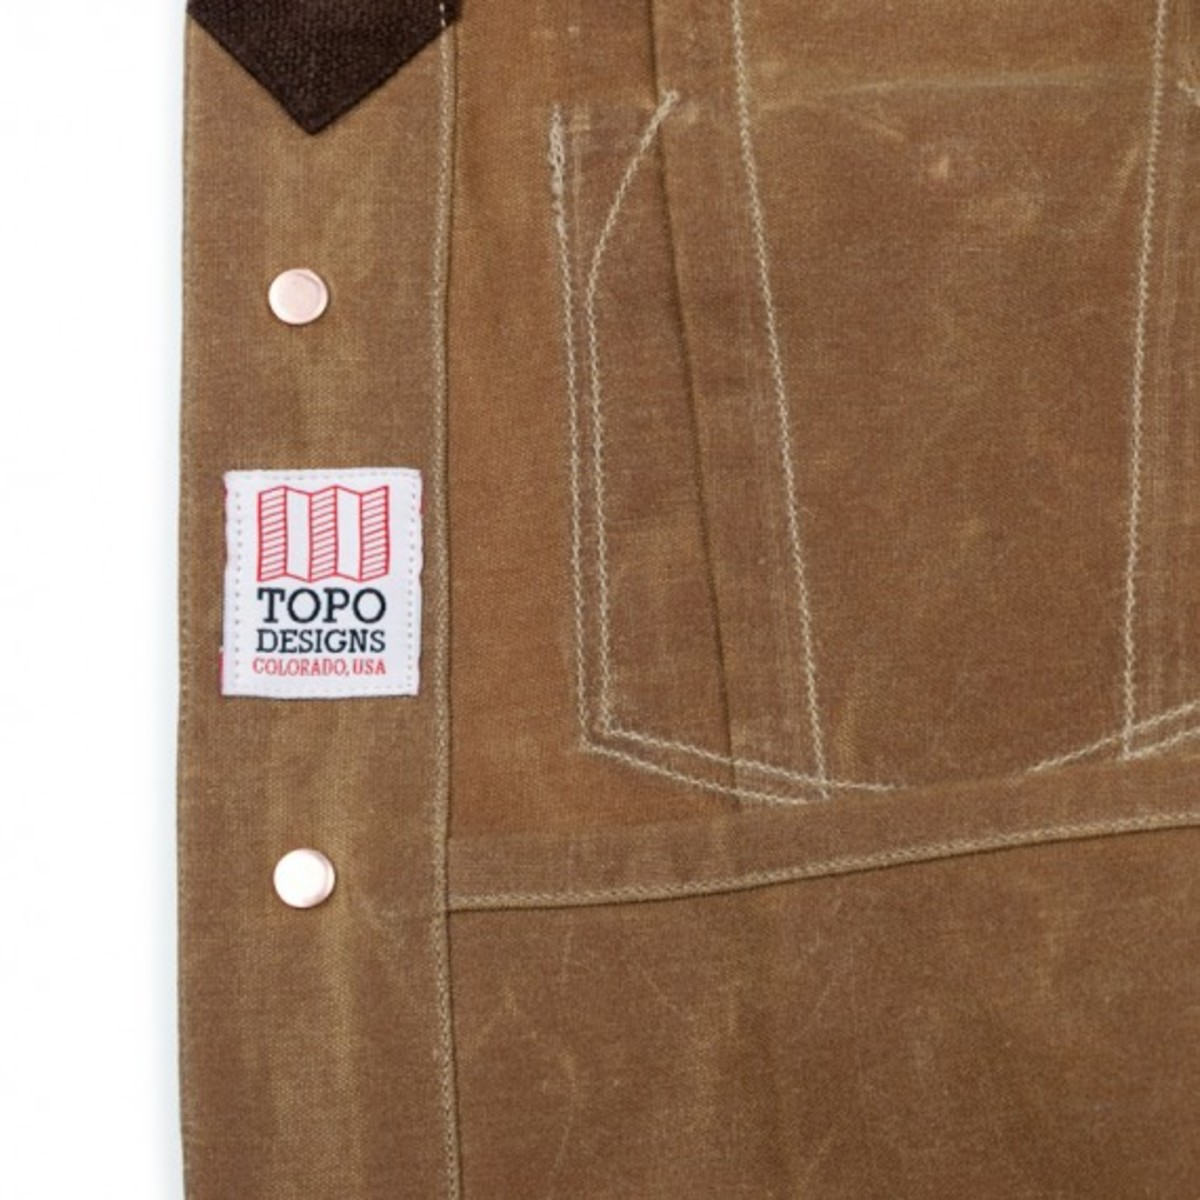 topo-designs-white-horse-trading-co-four-wind-field-jacket-006